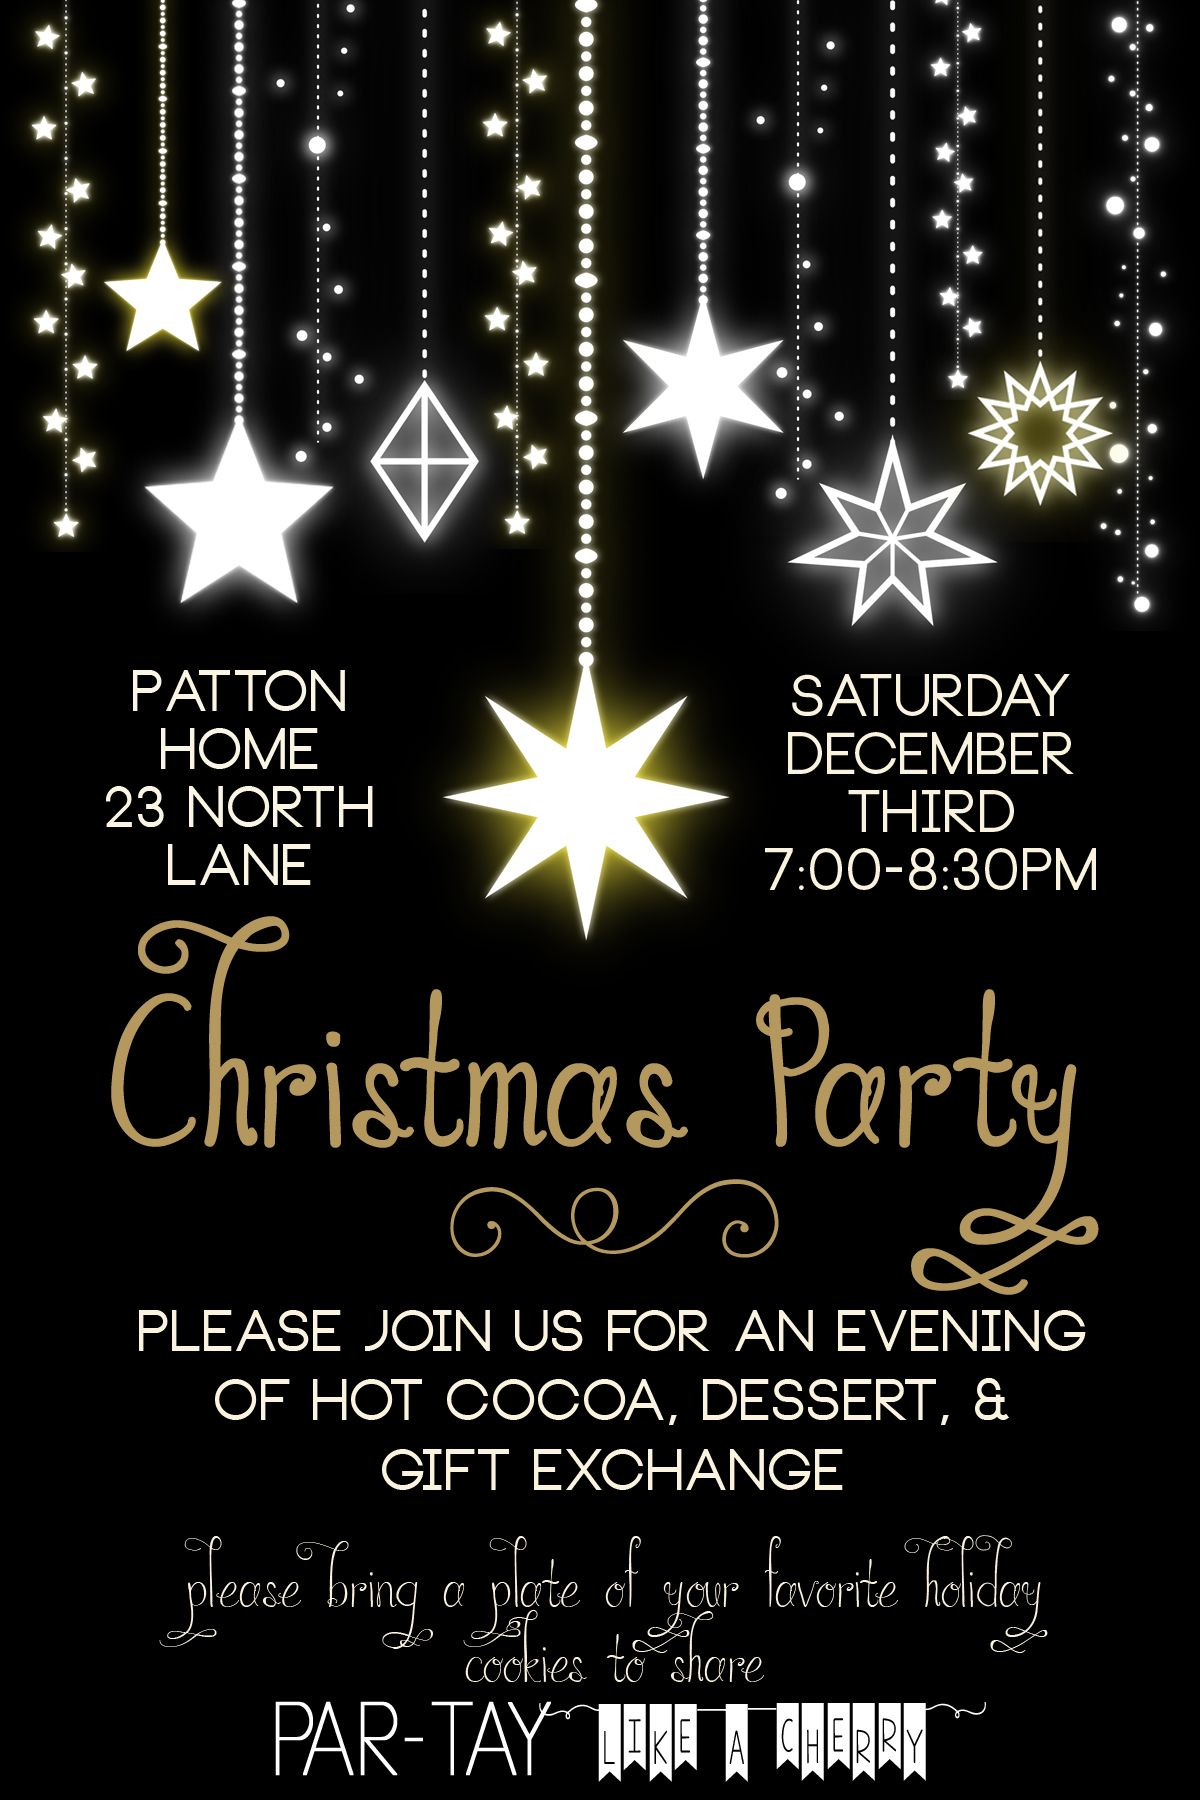 Free Christmas Party Invitation - Party Like a Cherry  Christmas